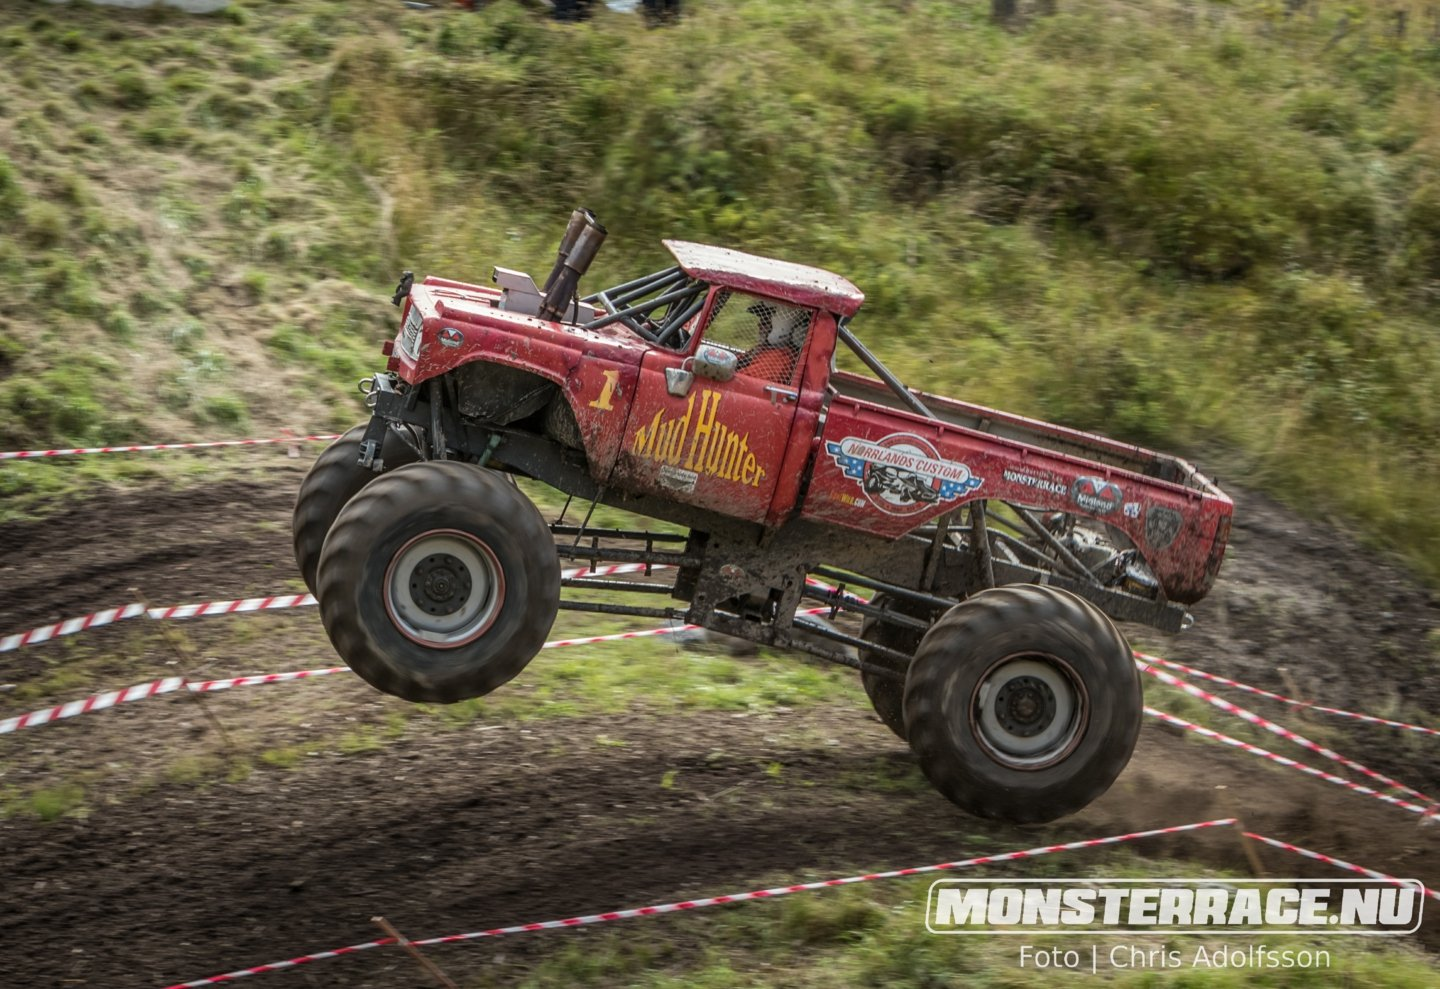 Monsterrace Ed dag 1 (173)